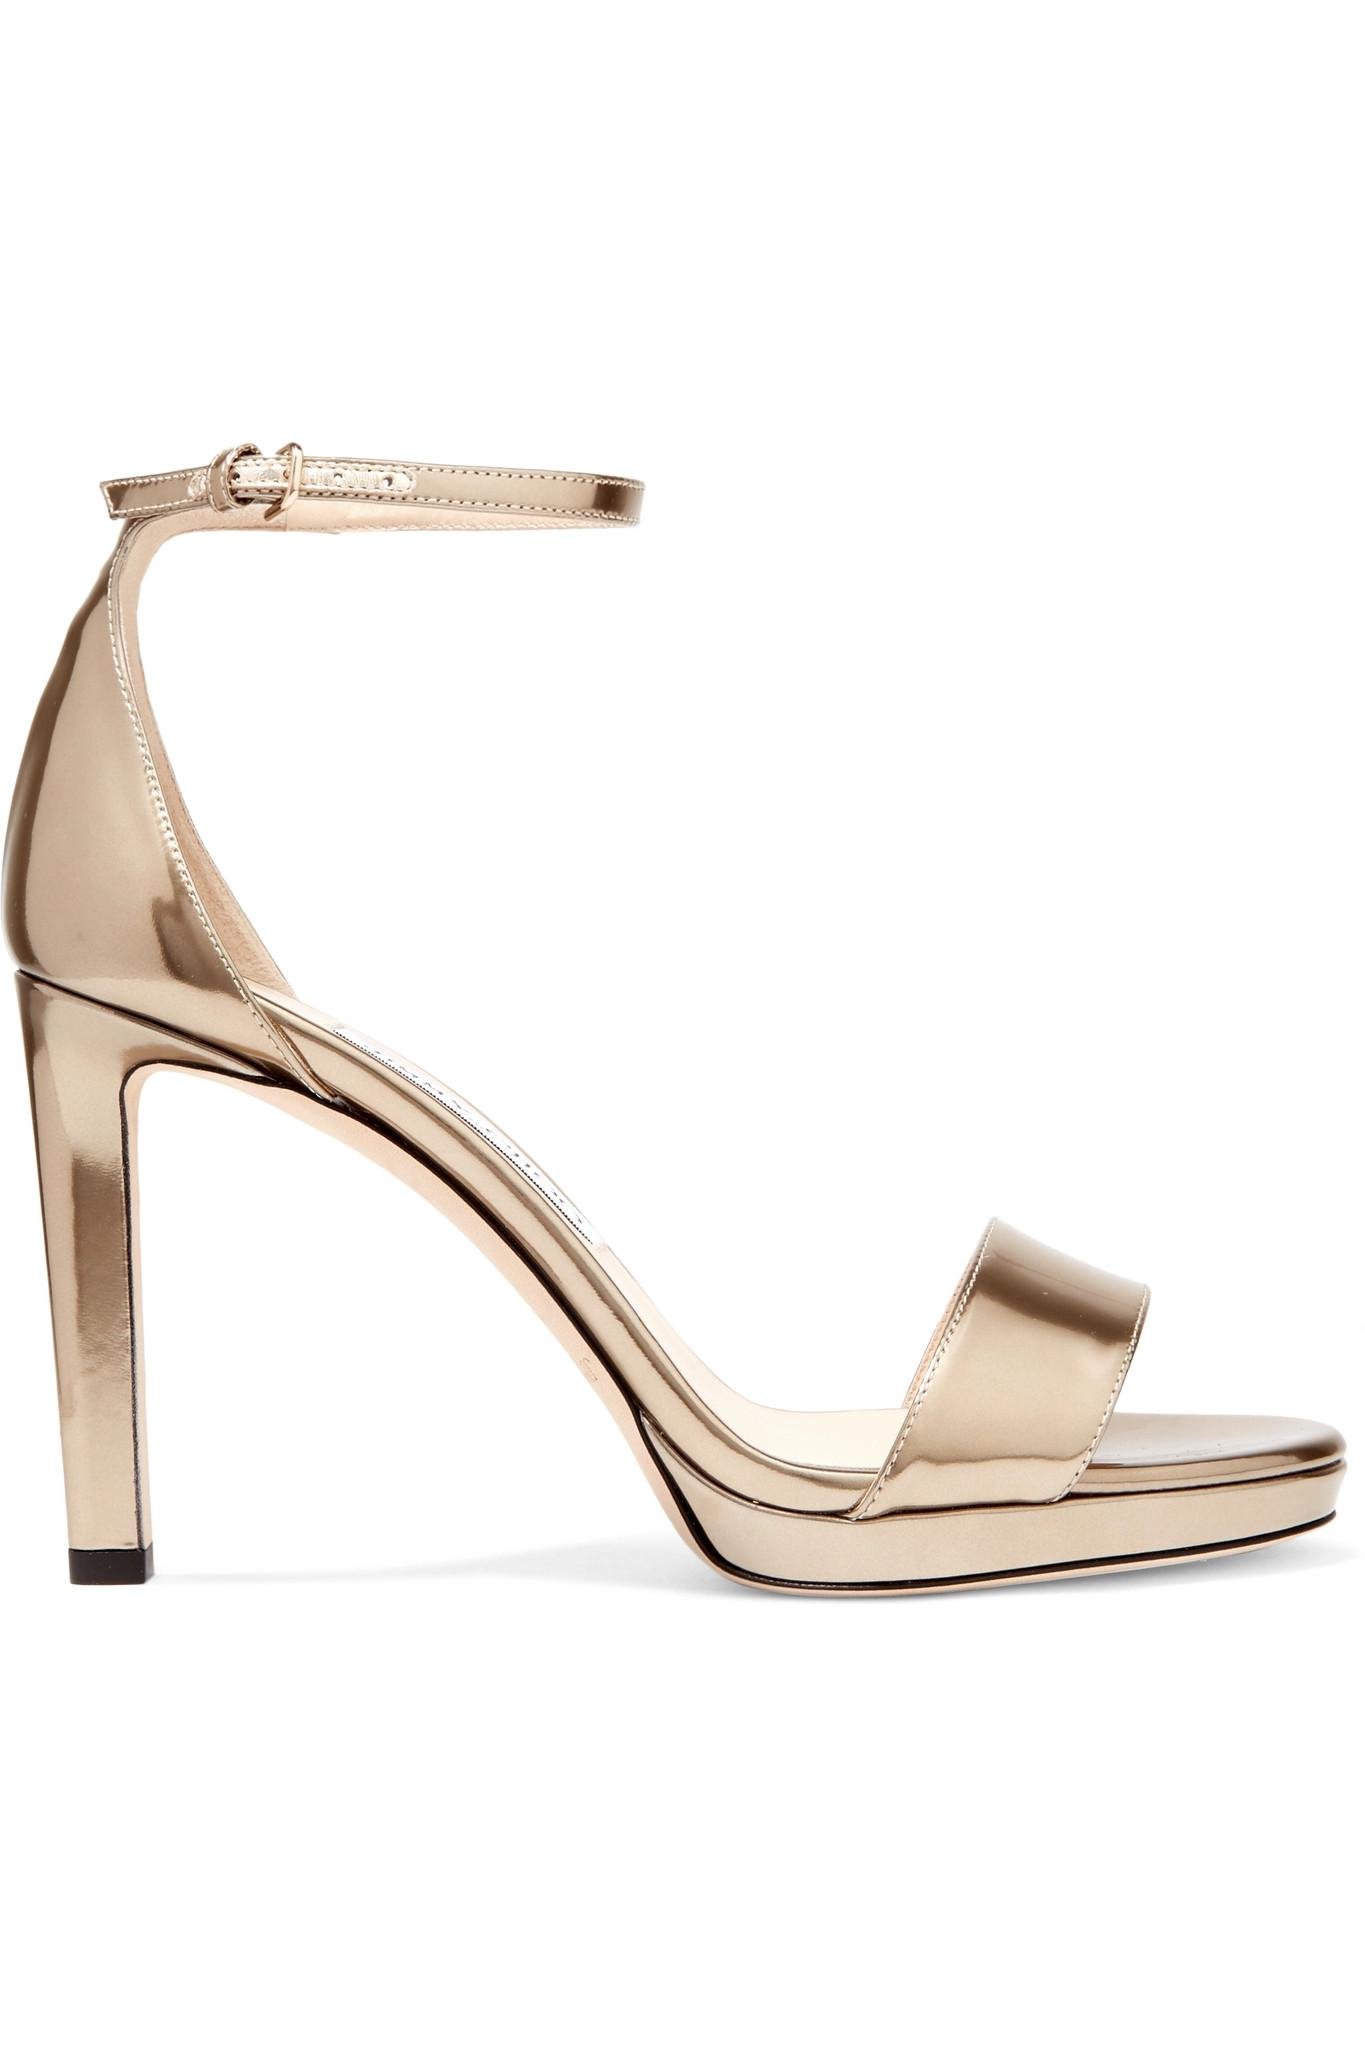 6dca13fc4fb2 Jimmy Choo Misty 100 Metallic Leather Platform Sandals in Metallic ...